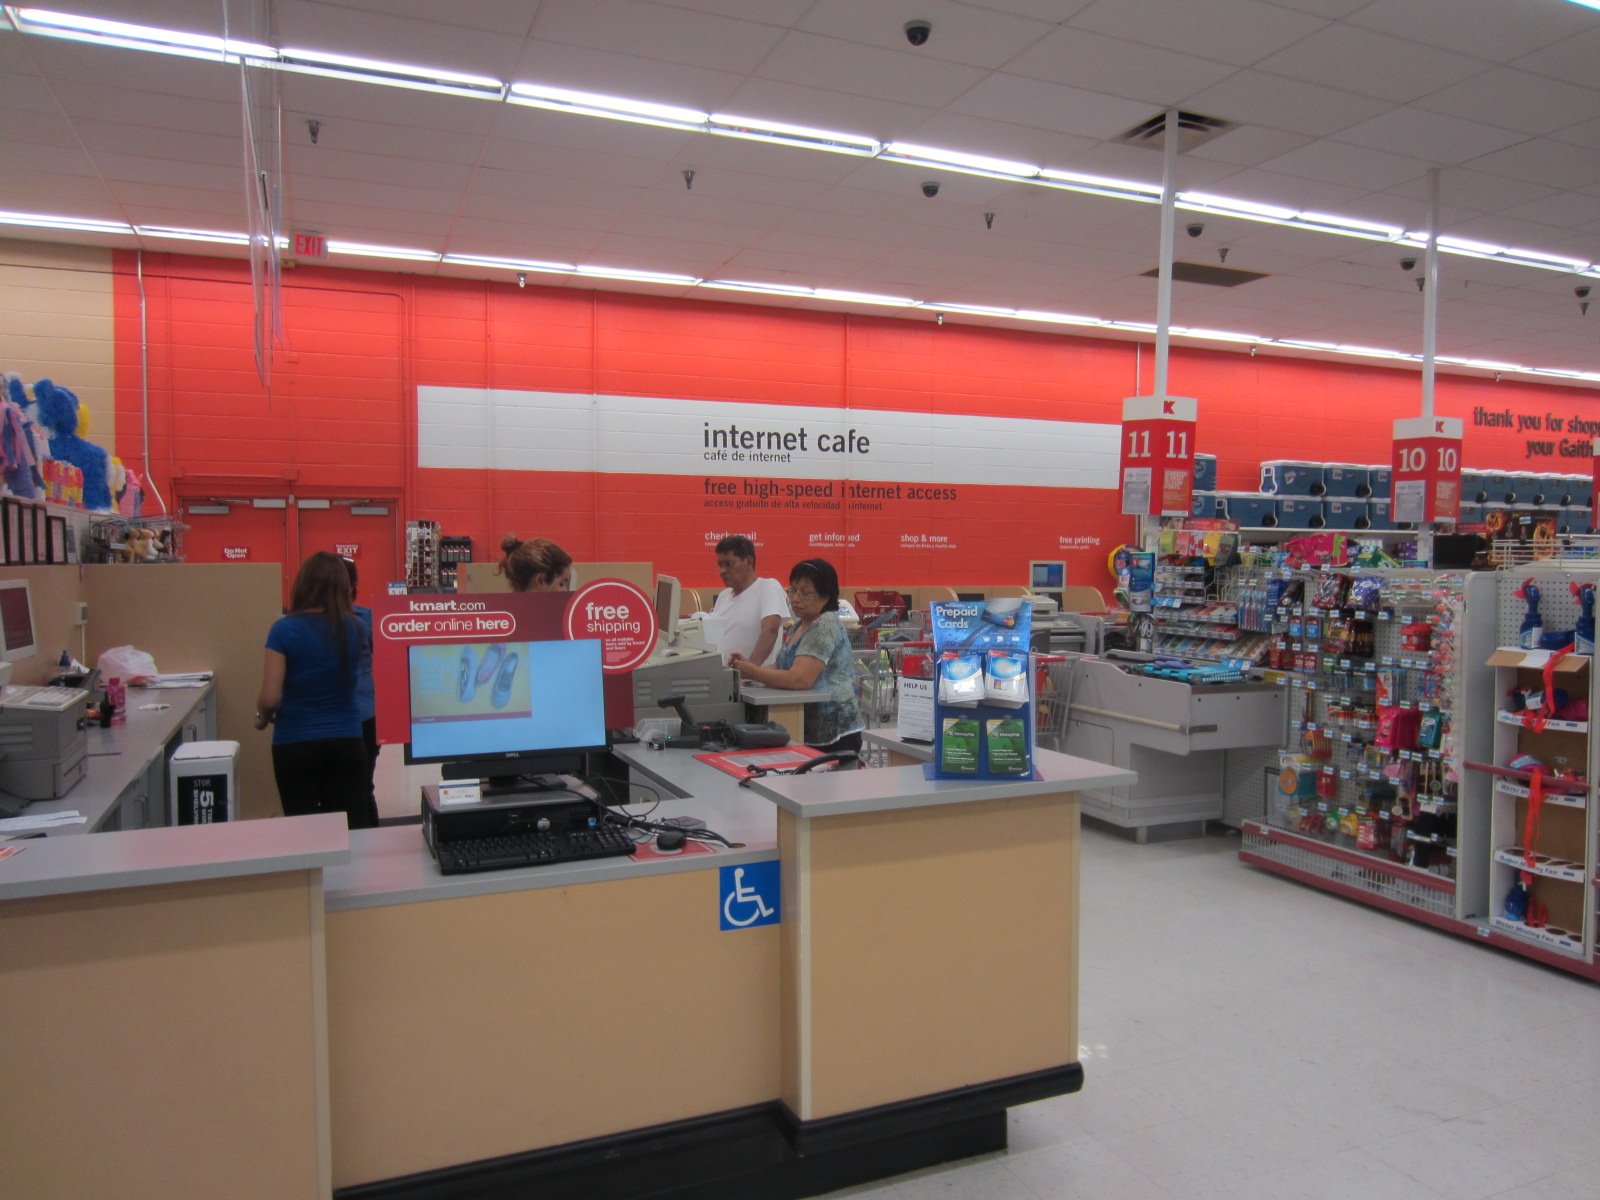 Kmart shoppers have been enjoying low prices and quality products since While Kmart now falls under Sears ownership, the department store still offers that same affordable products and great selection that they always have.